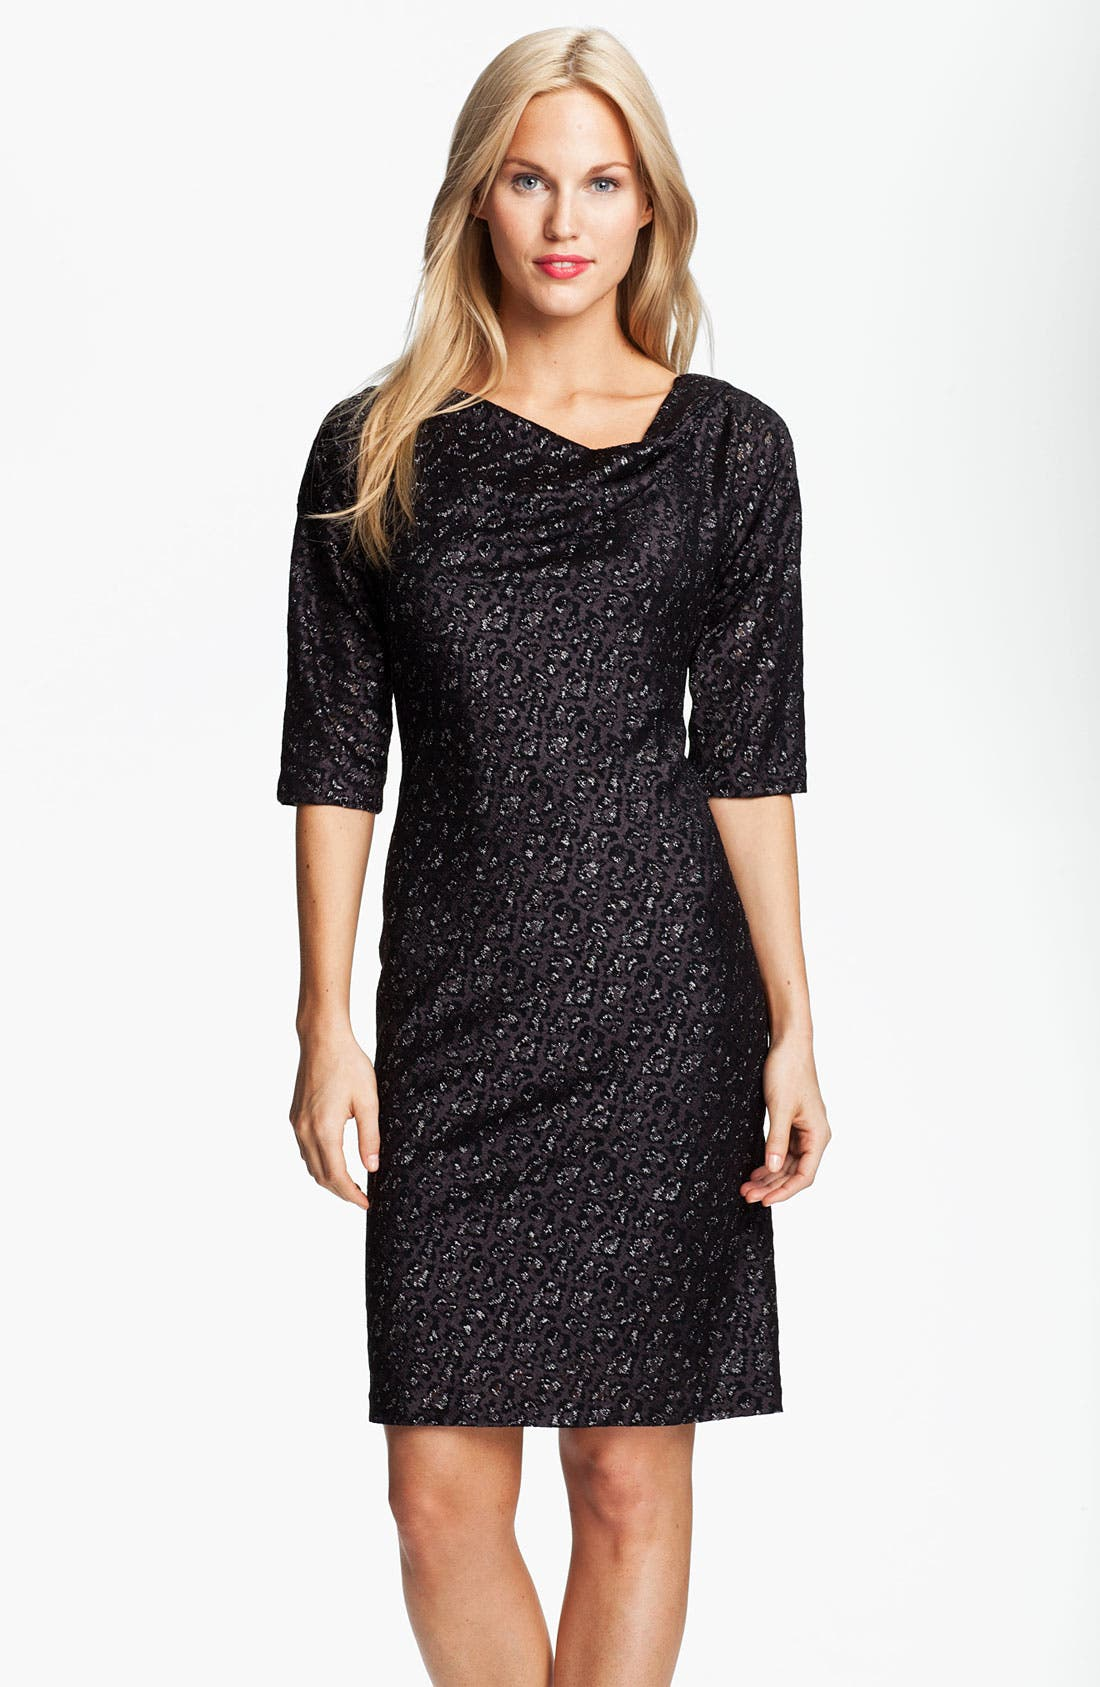 Main Image - Adrianna Papell Cowl Neck Metallic Jacquard Dress